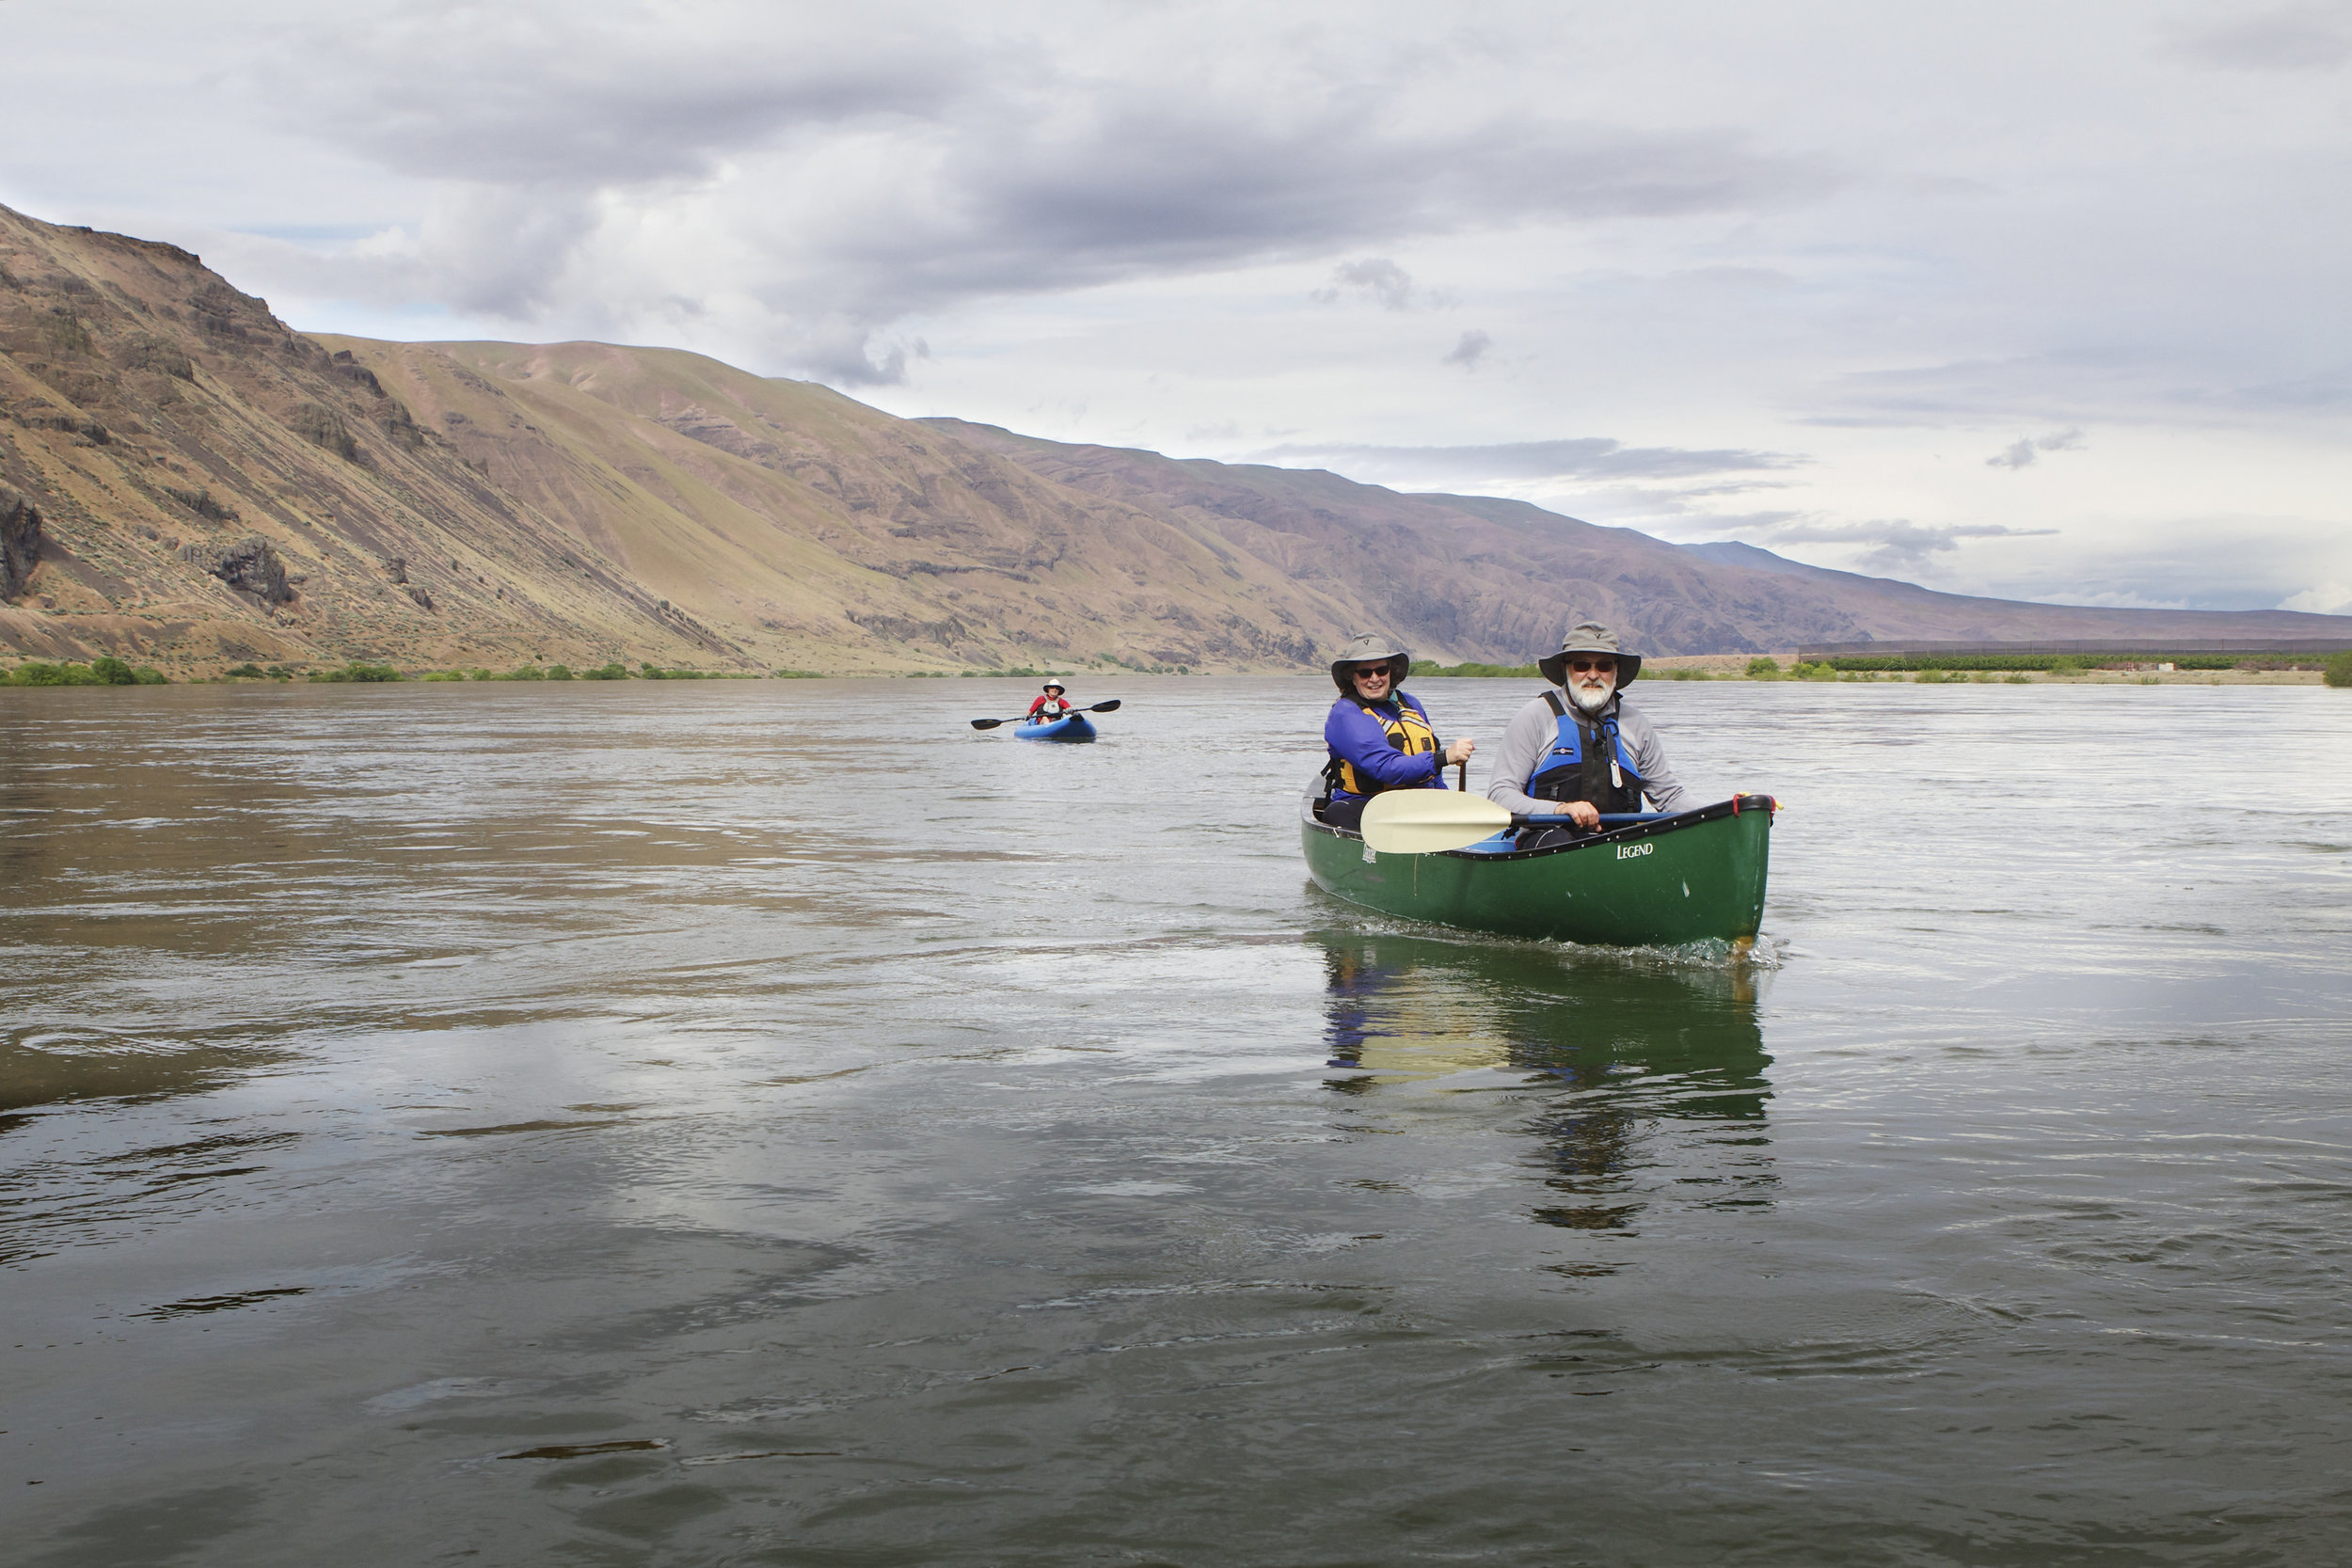 Canoeing on the Columbia River in the Hanford Reach National Monument. Photo by Michael Deckert.